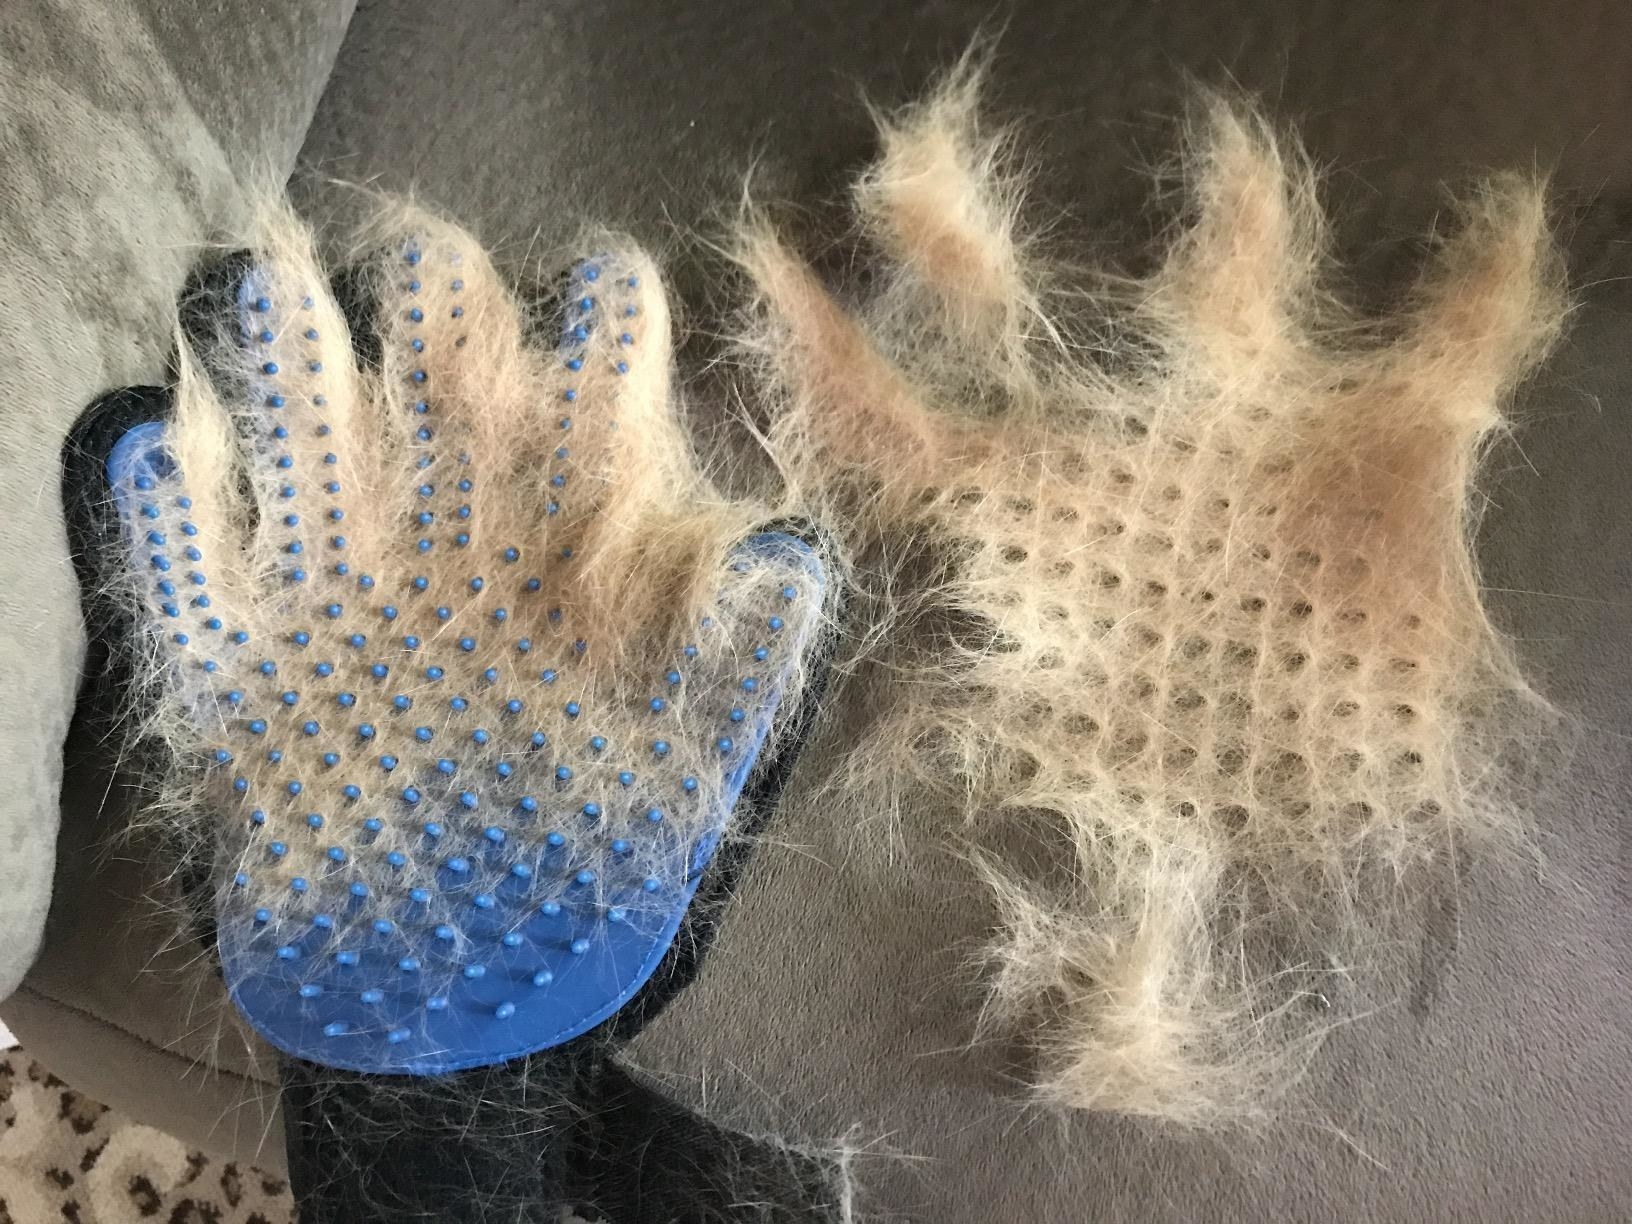 A hair covered glove and a clump of hair removed from a glove